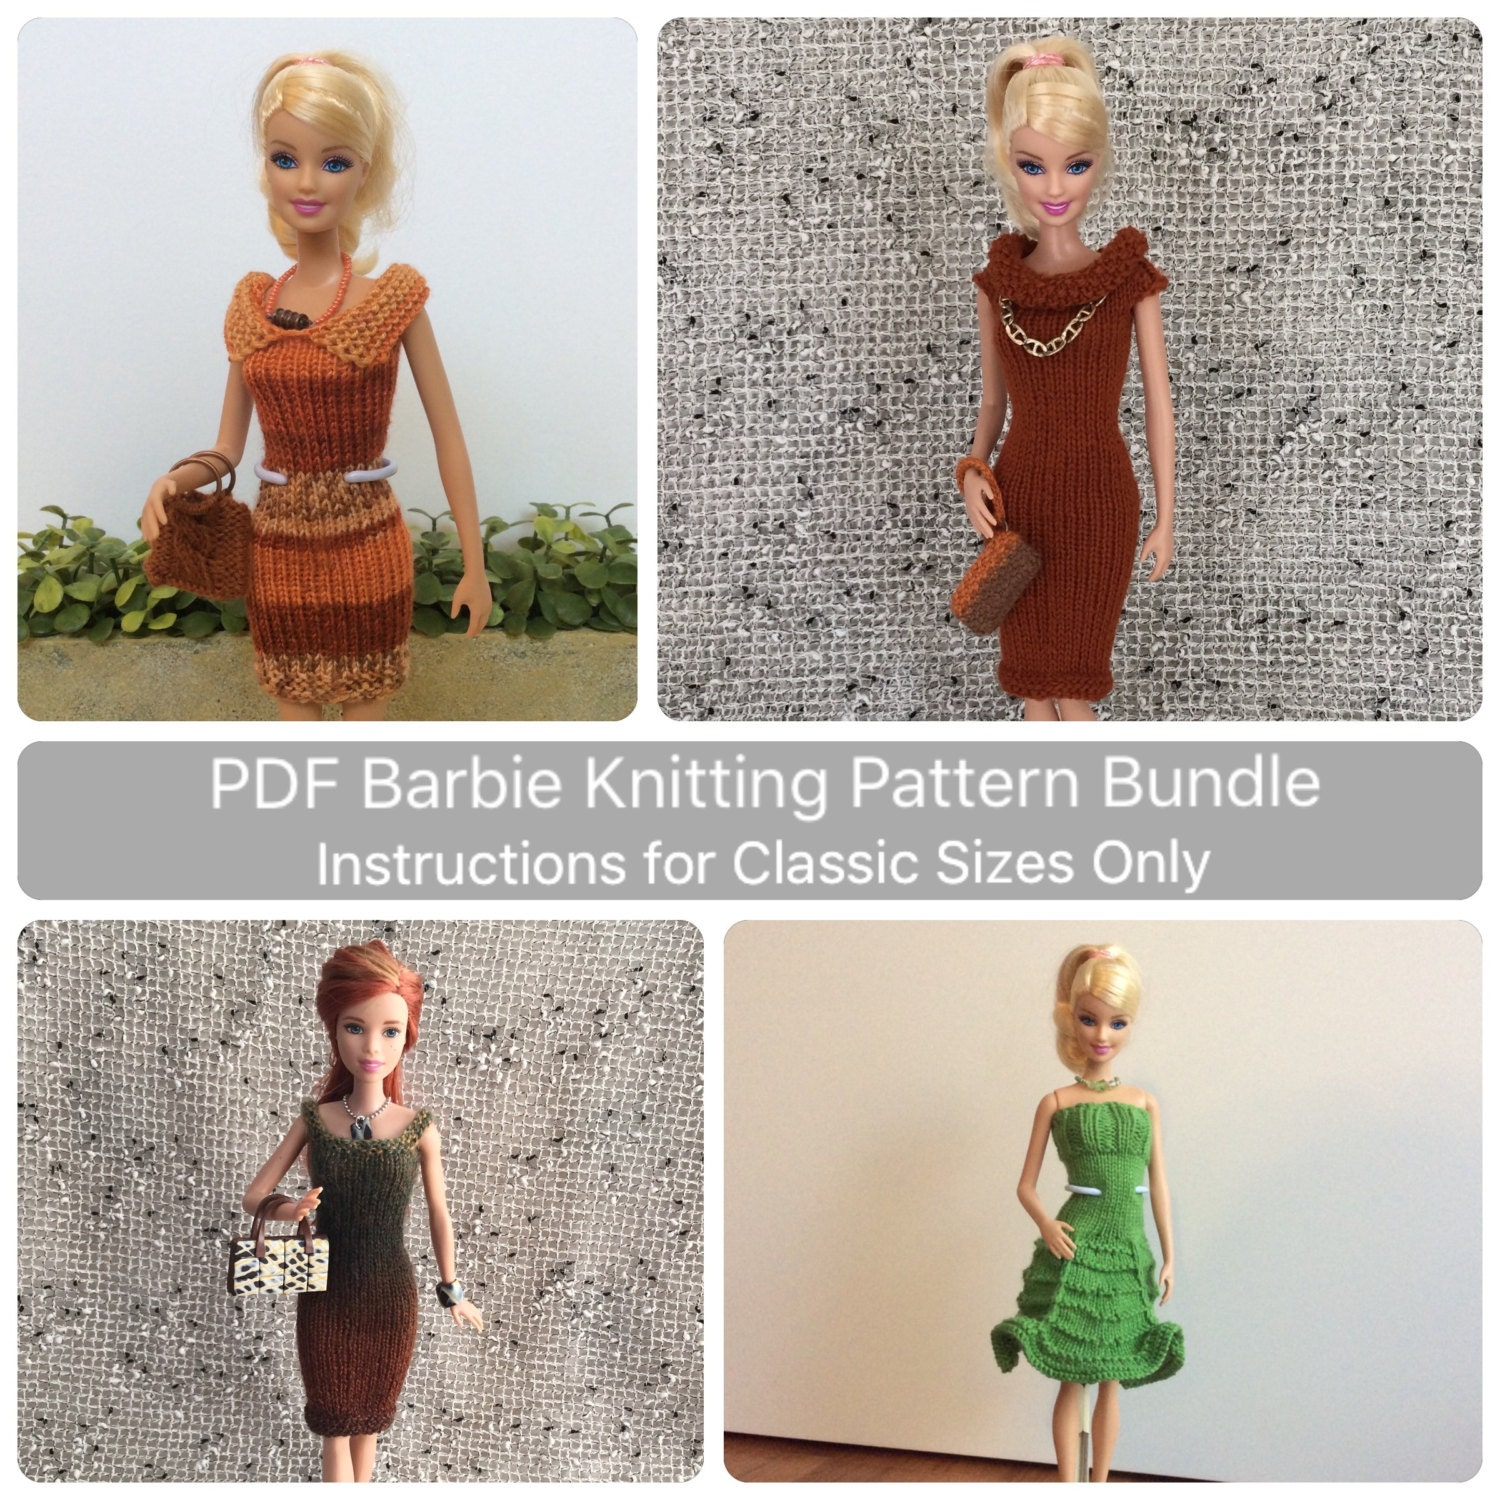 Barbie Knitting Patterns To Download : Classic Barbie Clothes Knitting Pattern Bundle for Essential